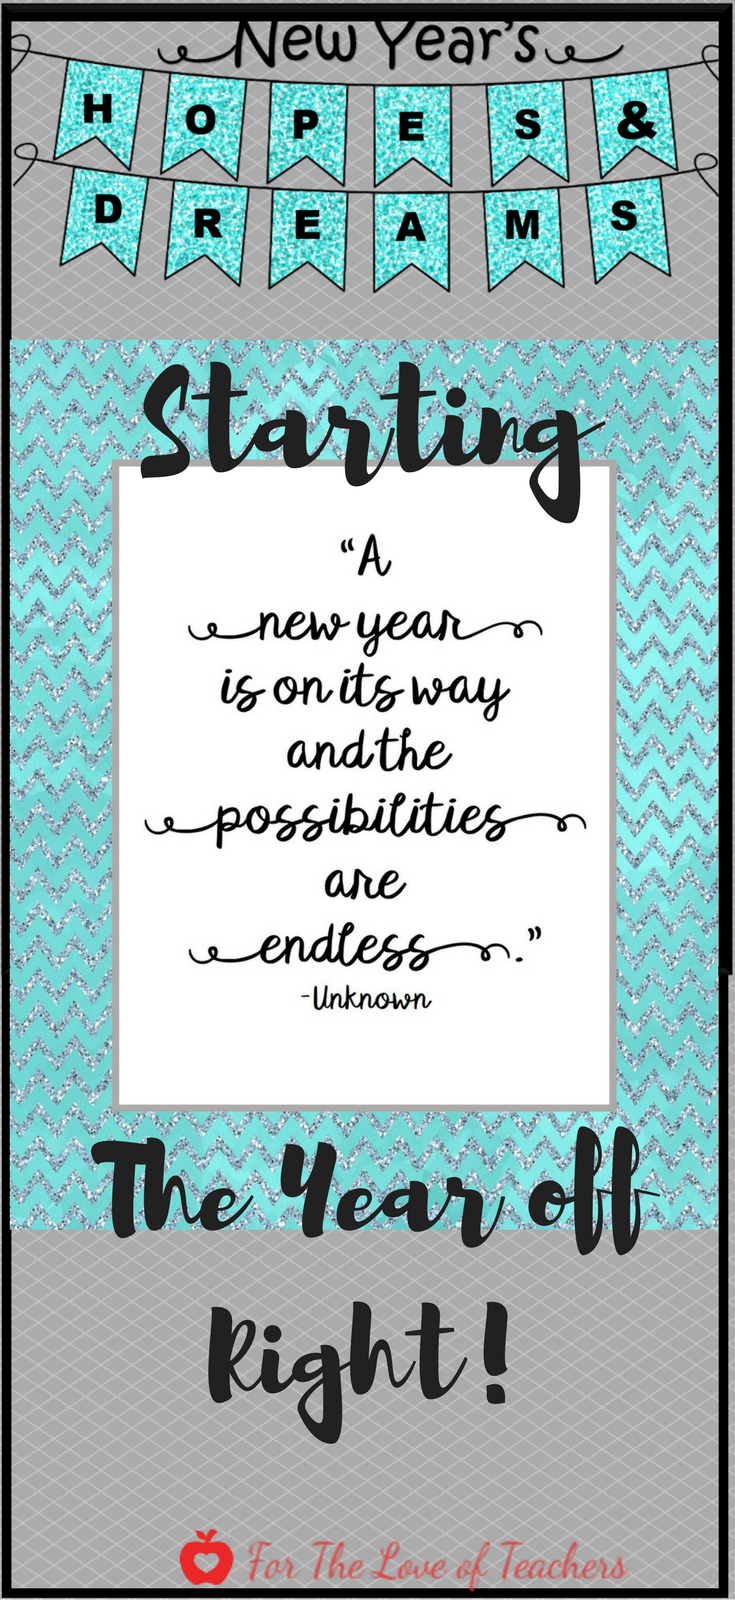 New Year's Hopes & Dreams: Starting The Year Off Right ~ For The Love of Teachers